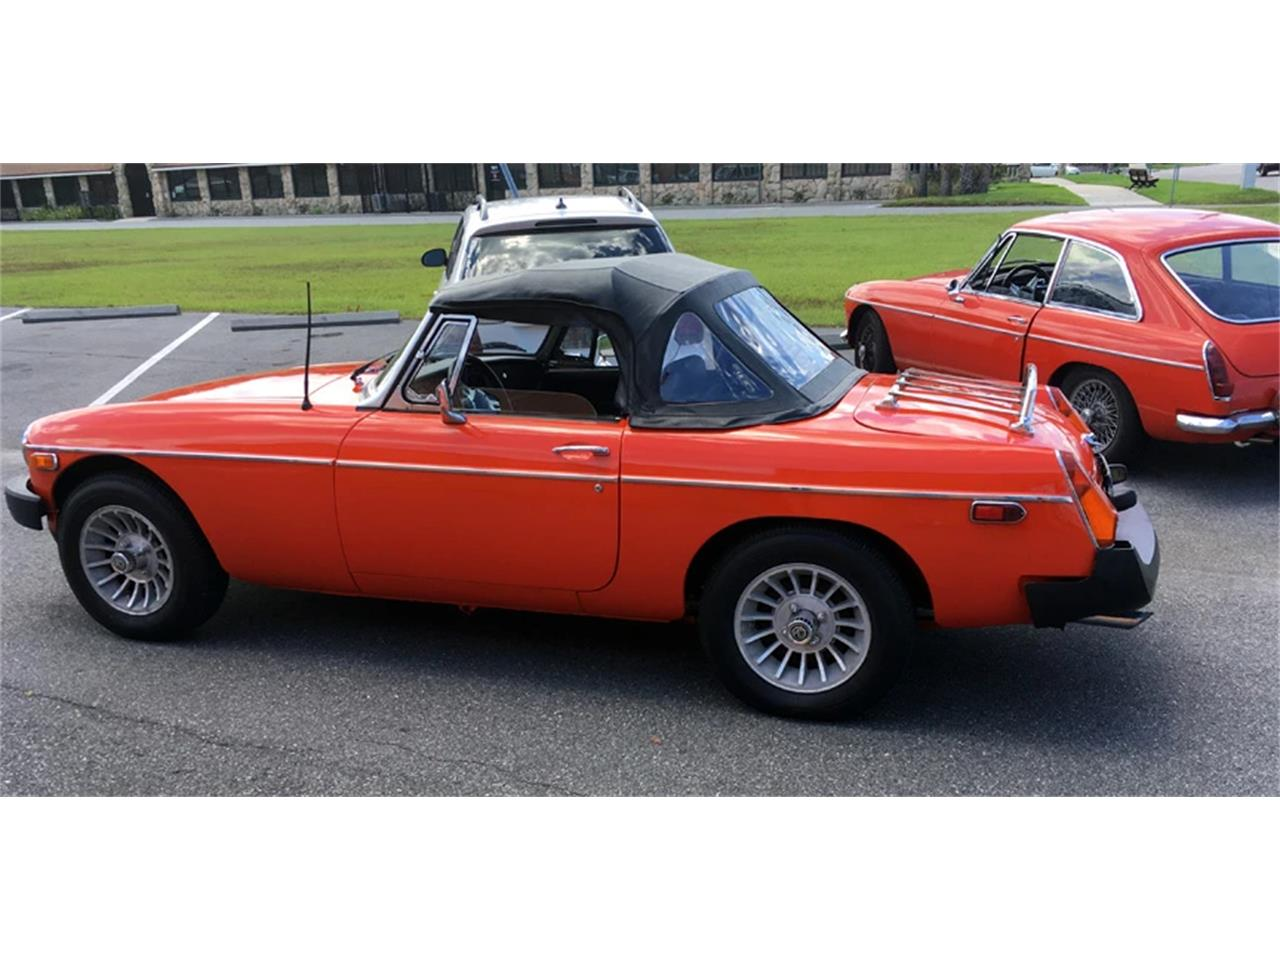 Large Picture of 1979 MG MGB located in  FL - $9,000.00 Offered by Christopher John LTD - OJPB